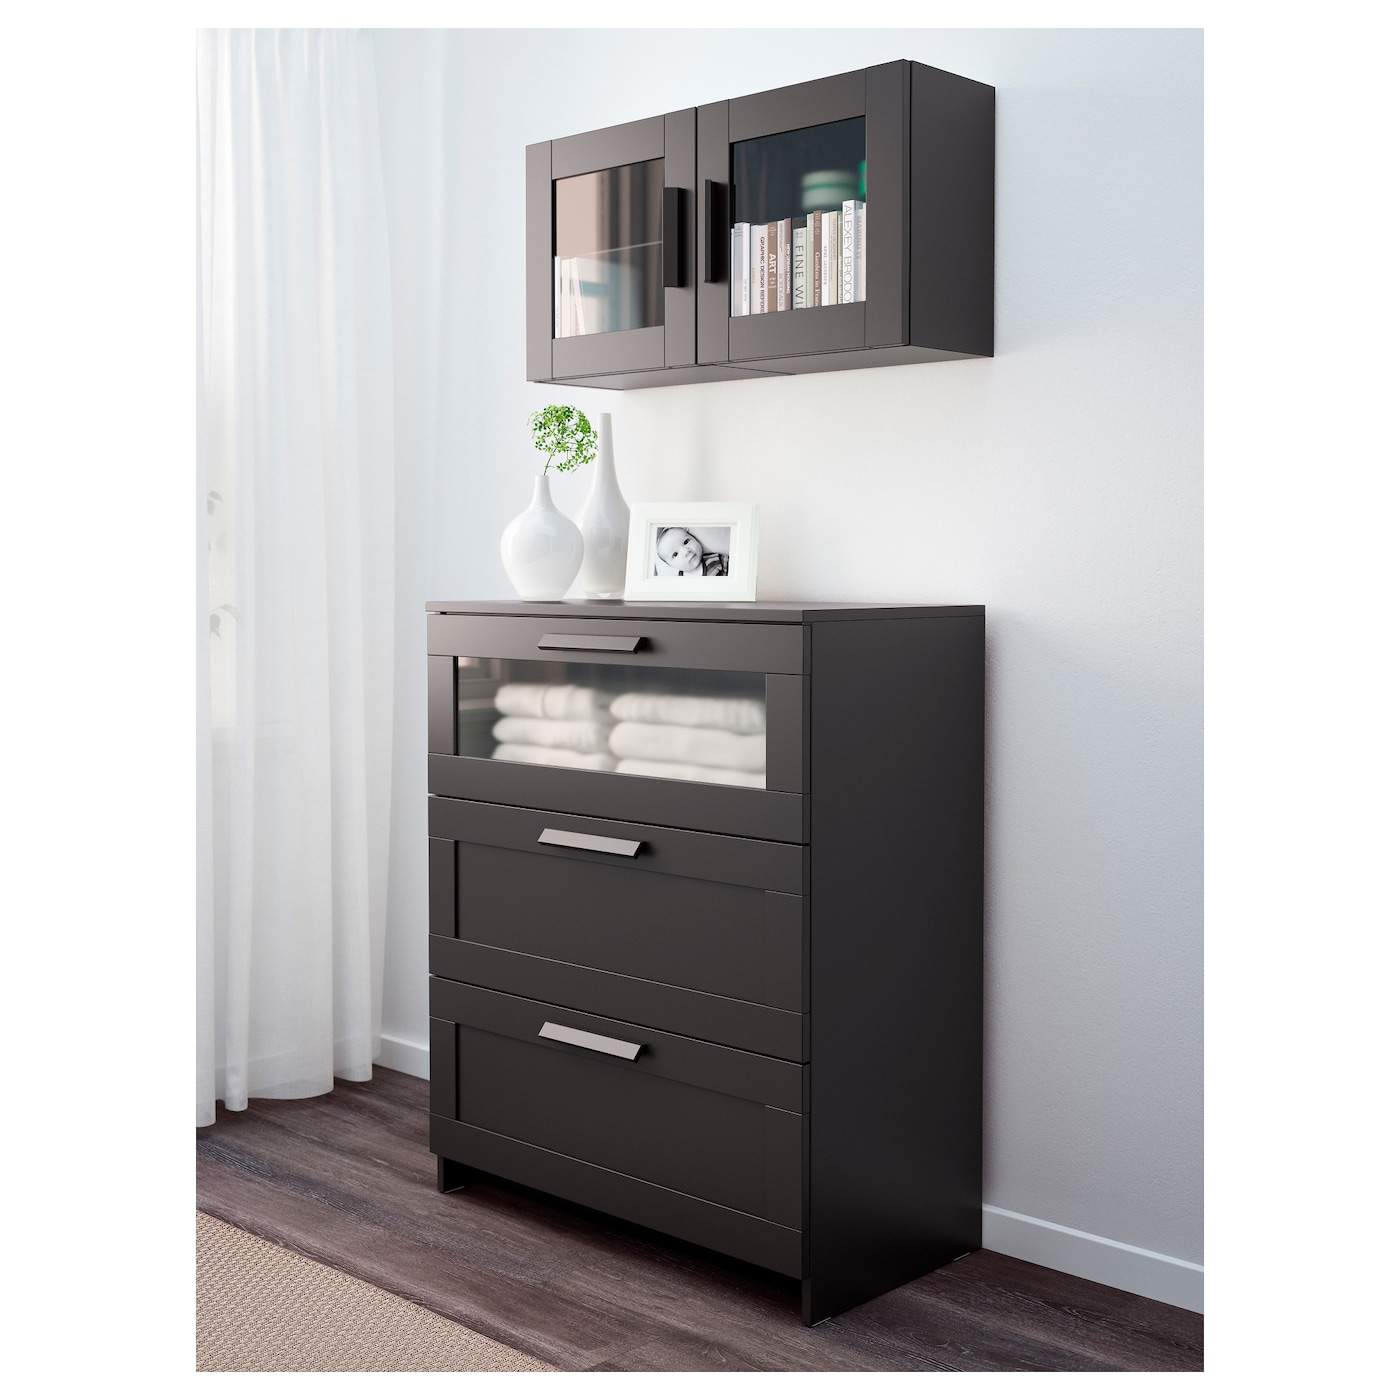 Brimnes wall cabinet with glass door black 39x39 cm ikea for Black cabinet with doors